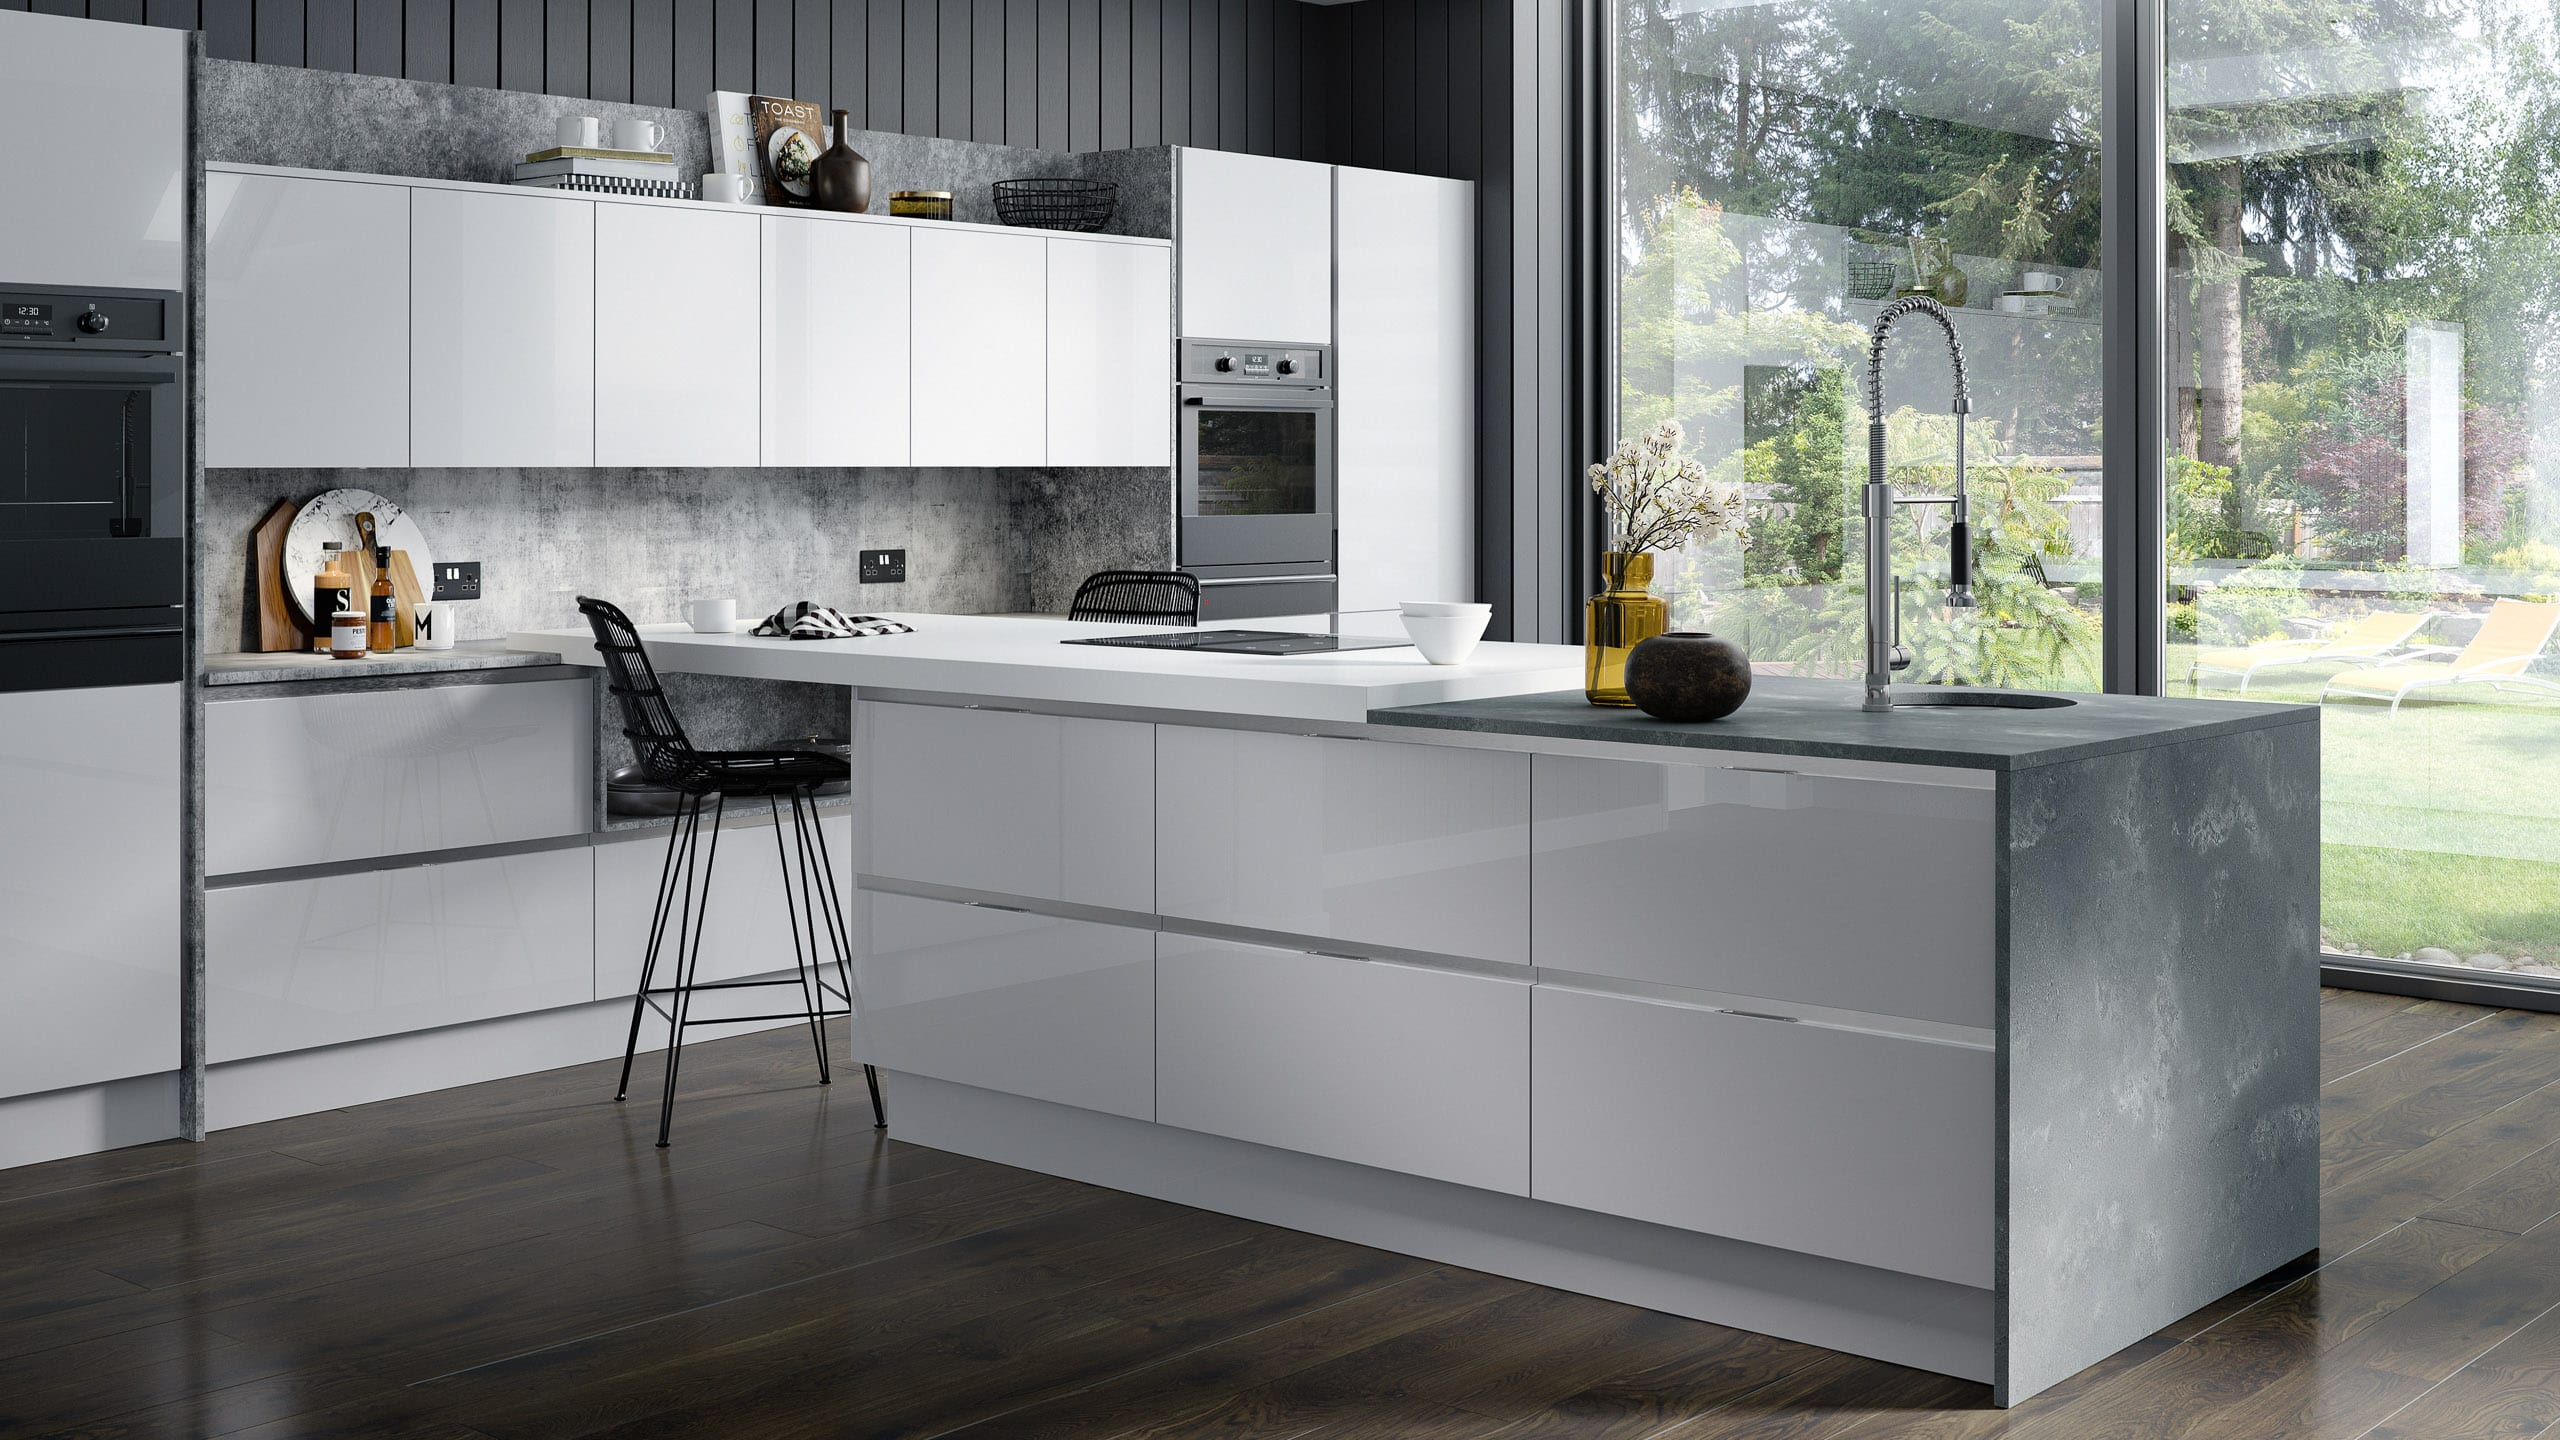 Inset Gloss Light Grey kitchen